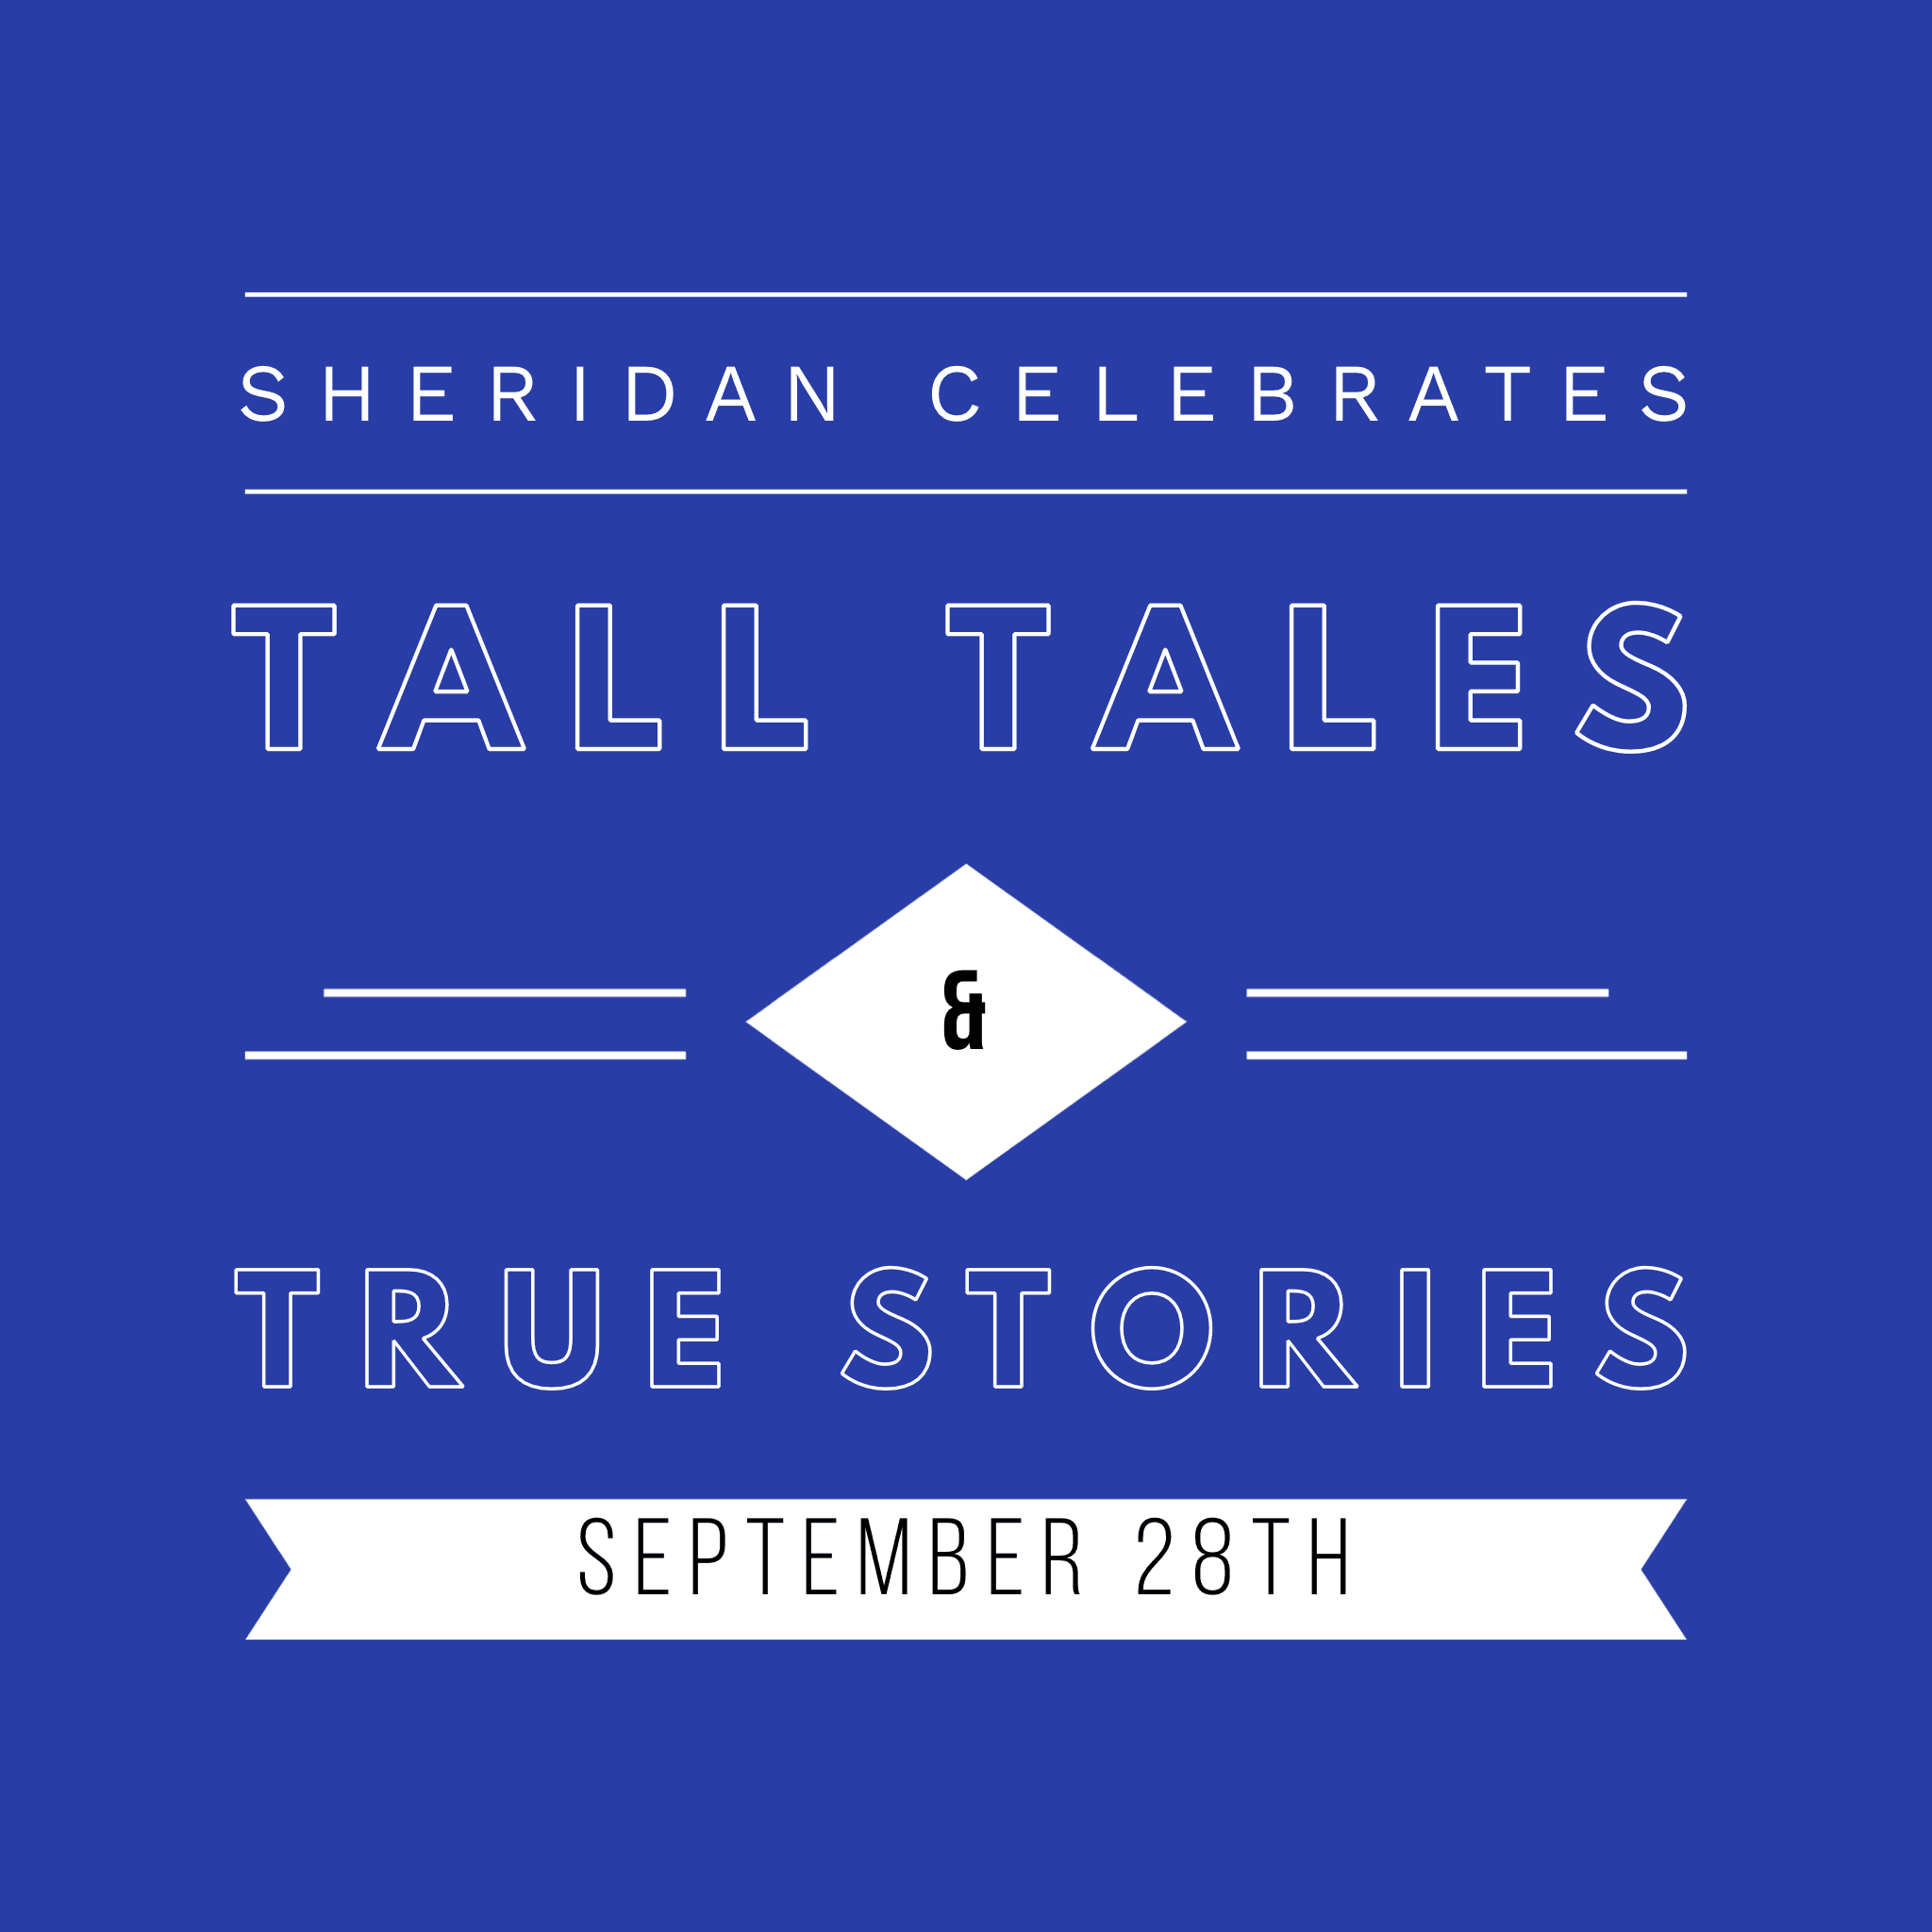 Sherian Celebrates Tall Tales & True Stories on Saturday, September 28th.